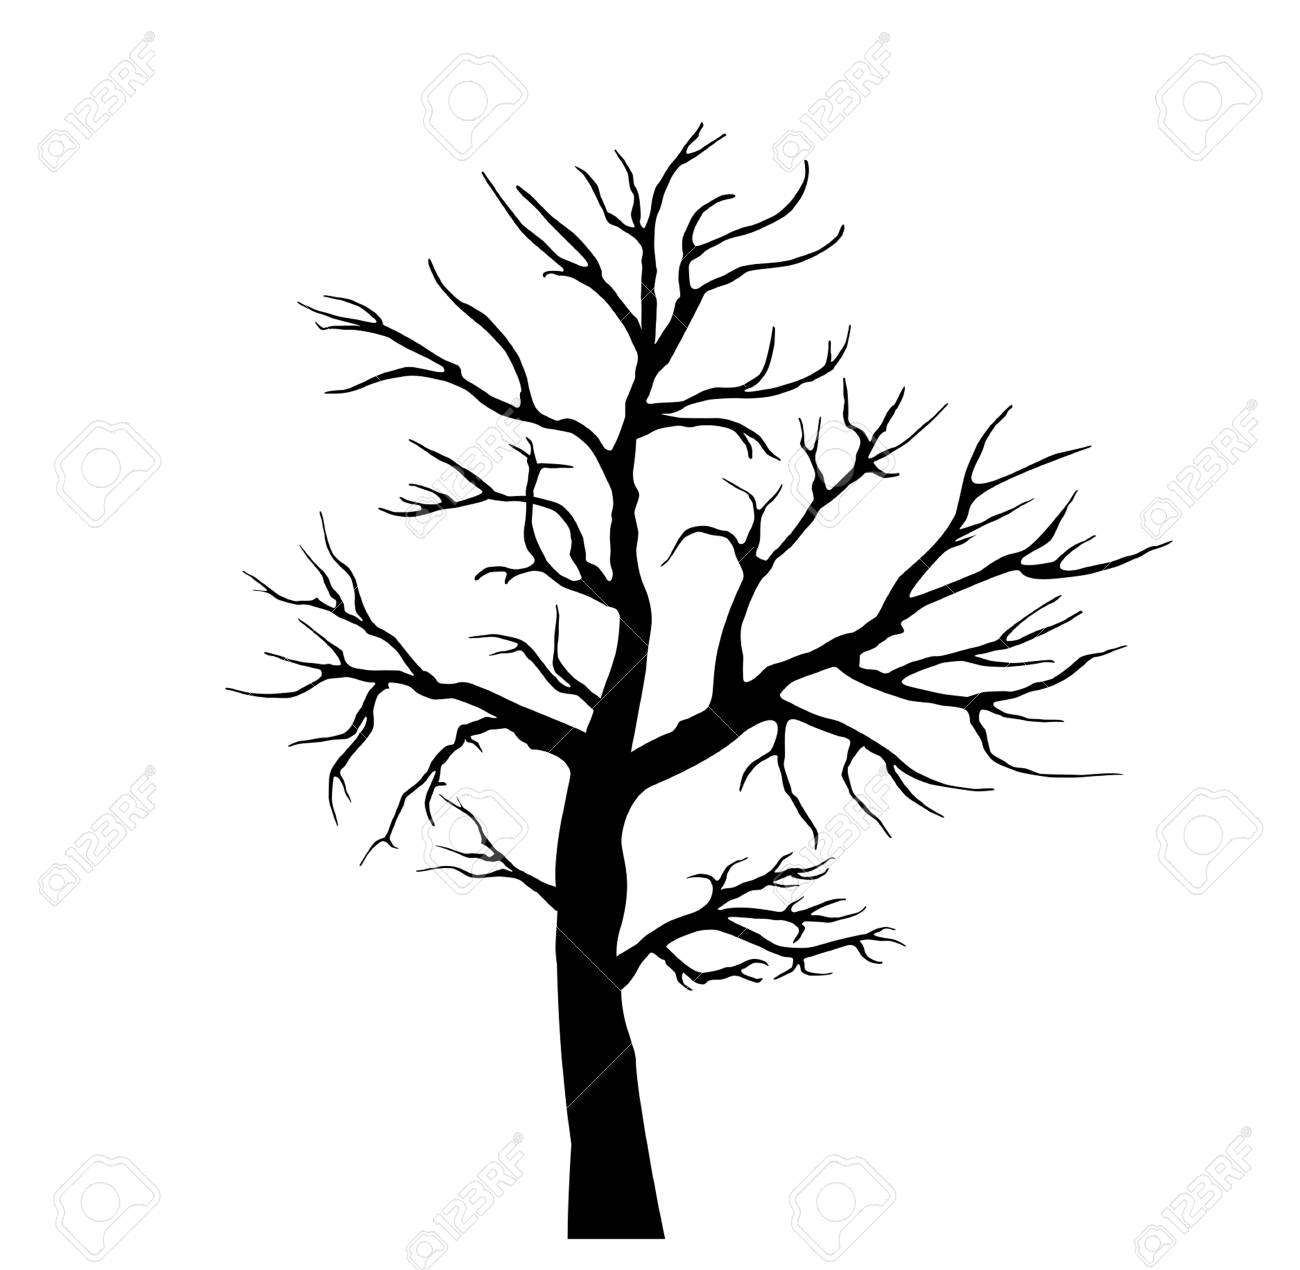 Black Silhouette Of A Tree Without Leaves Black And White